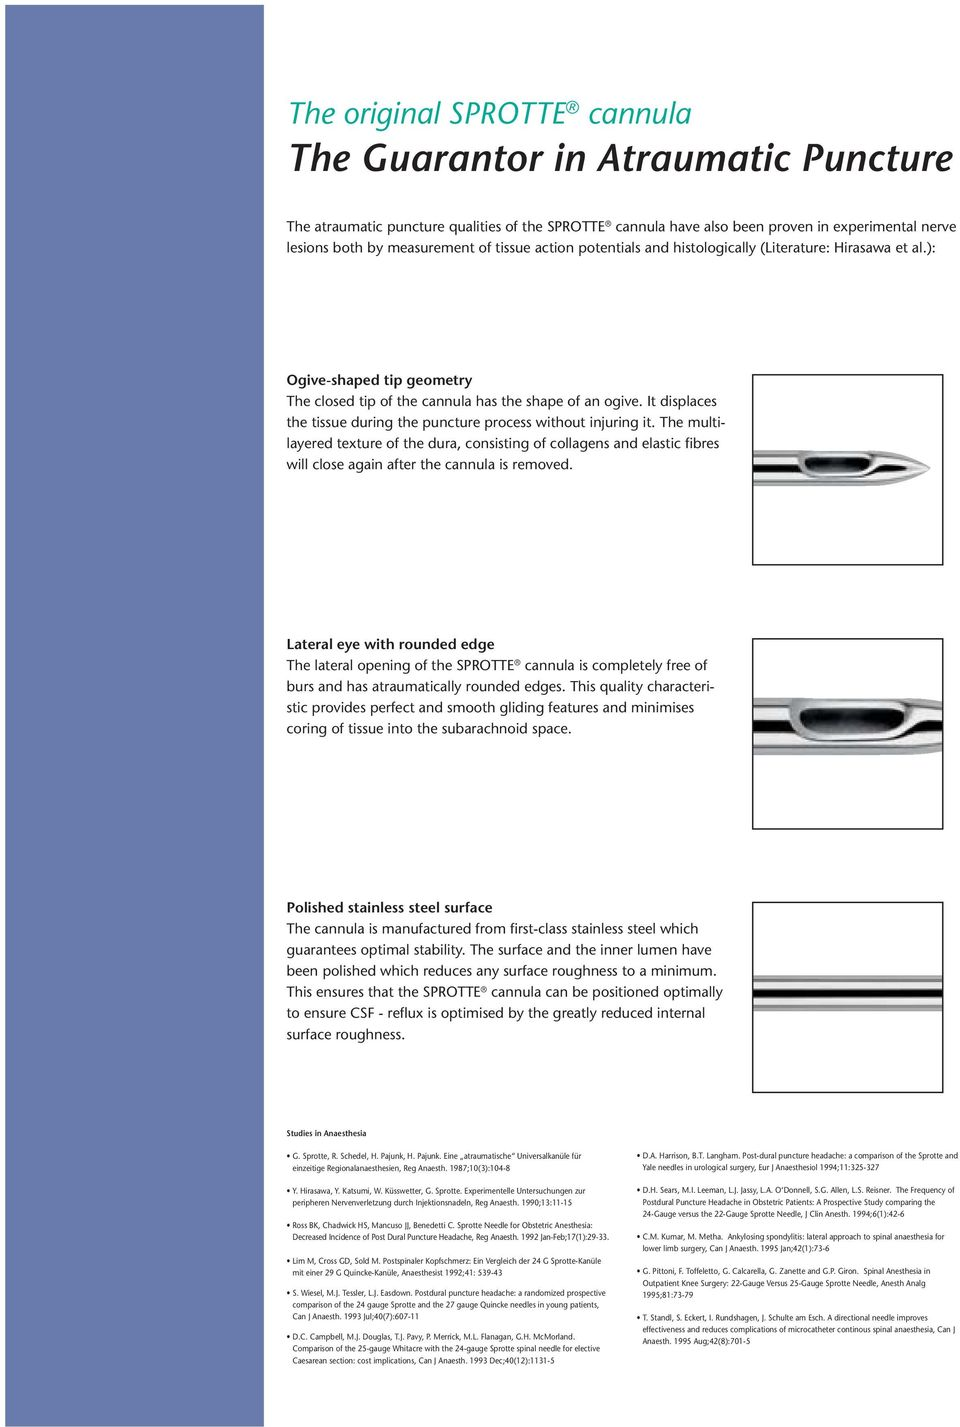 Lumbar Puncture with the SPROTTE Cannula For Safe Diagnostics - PDF